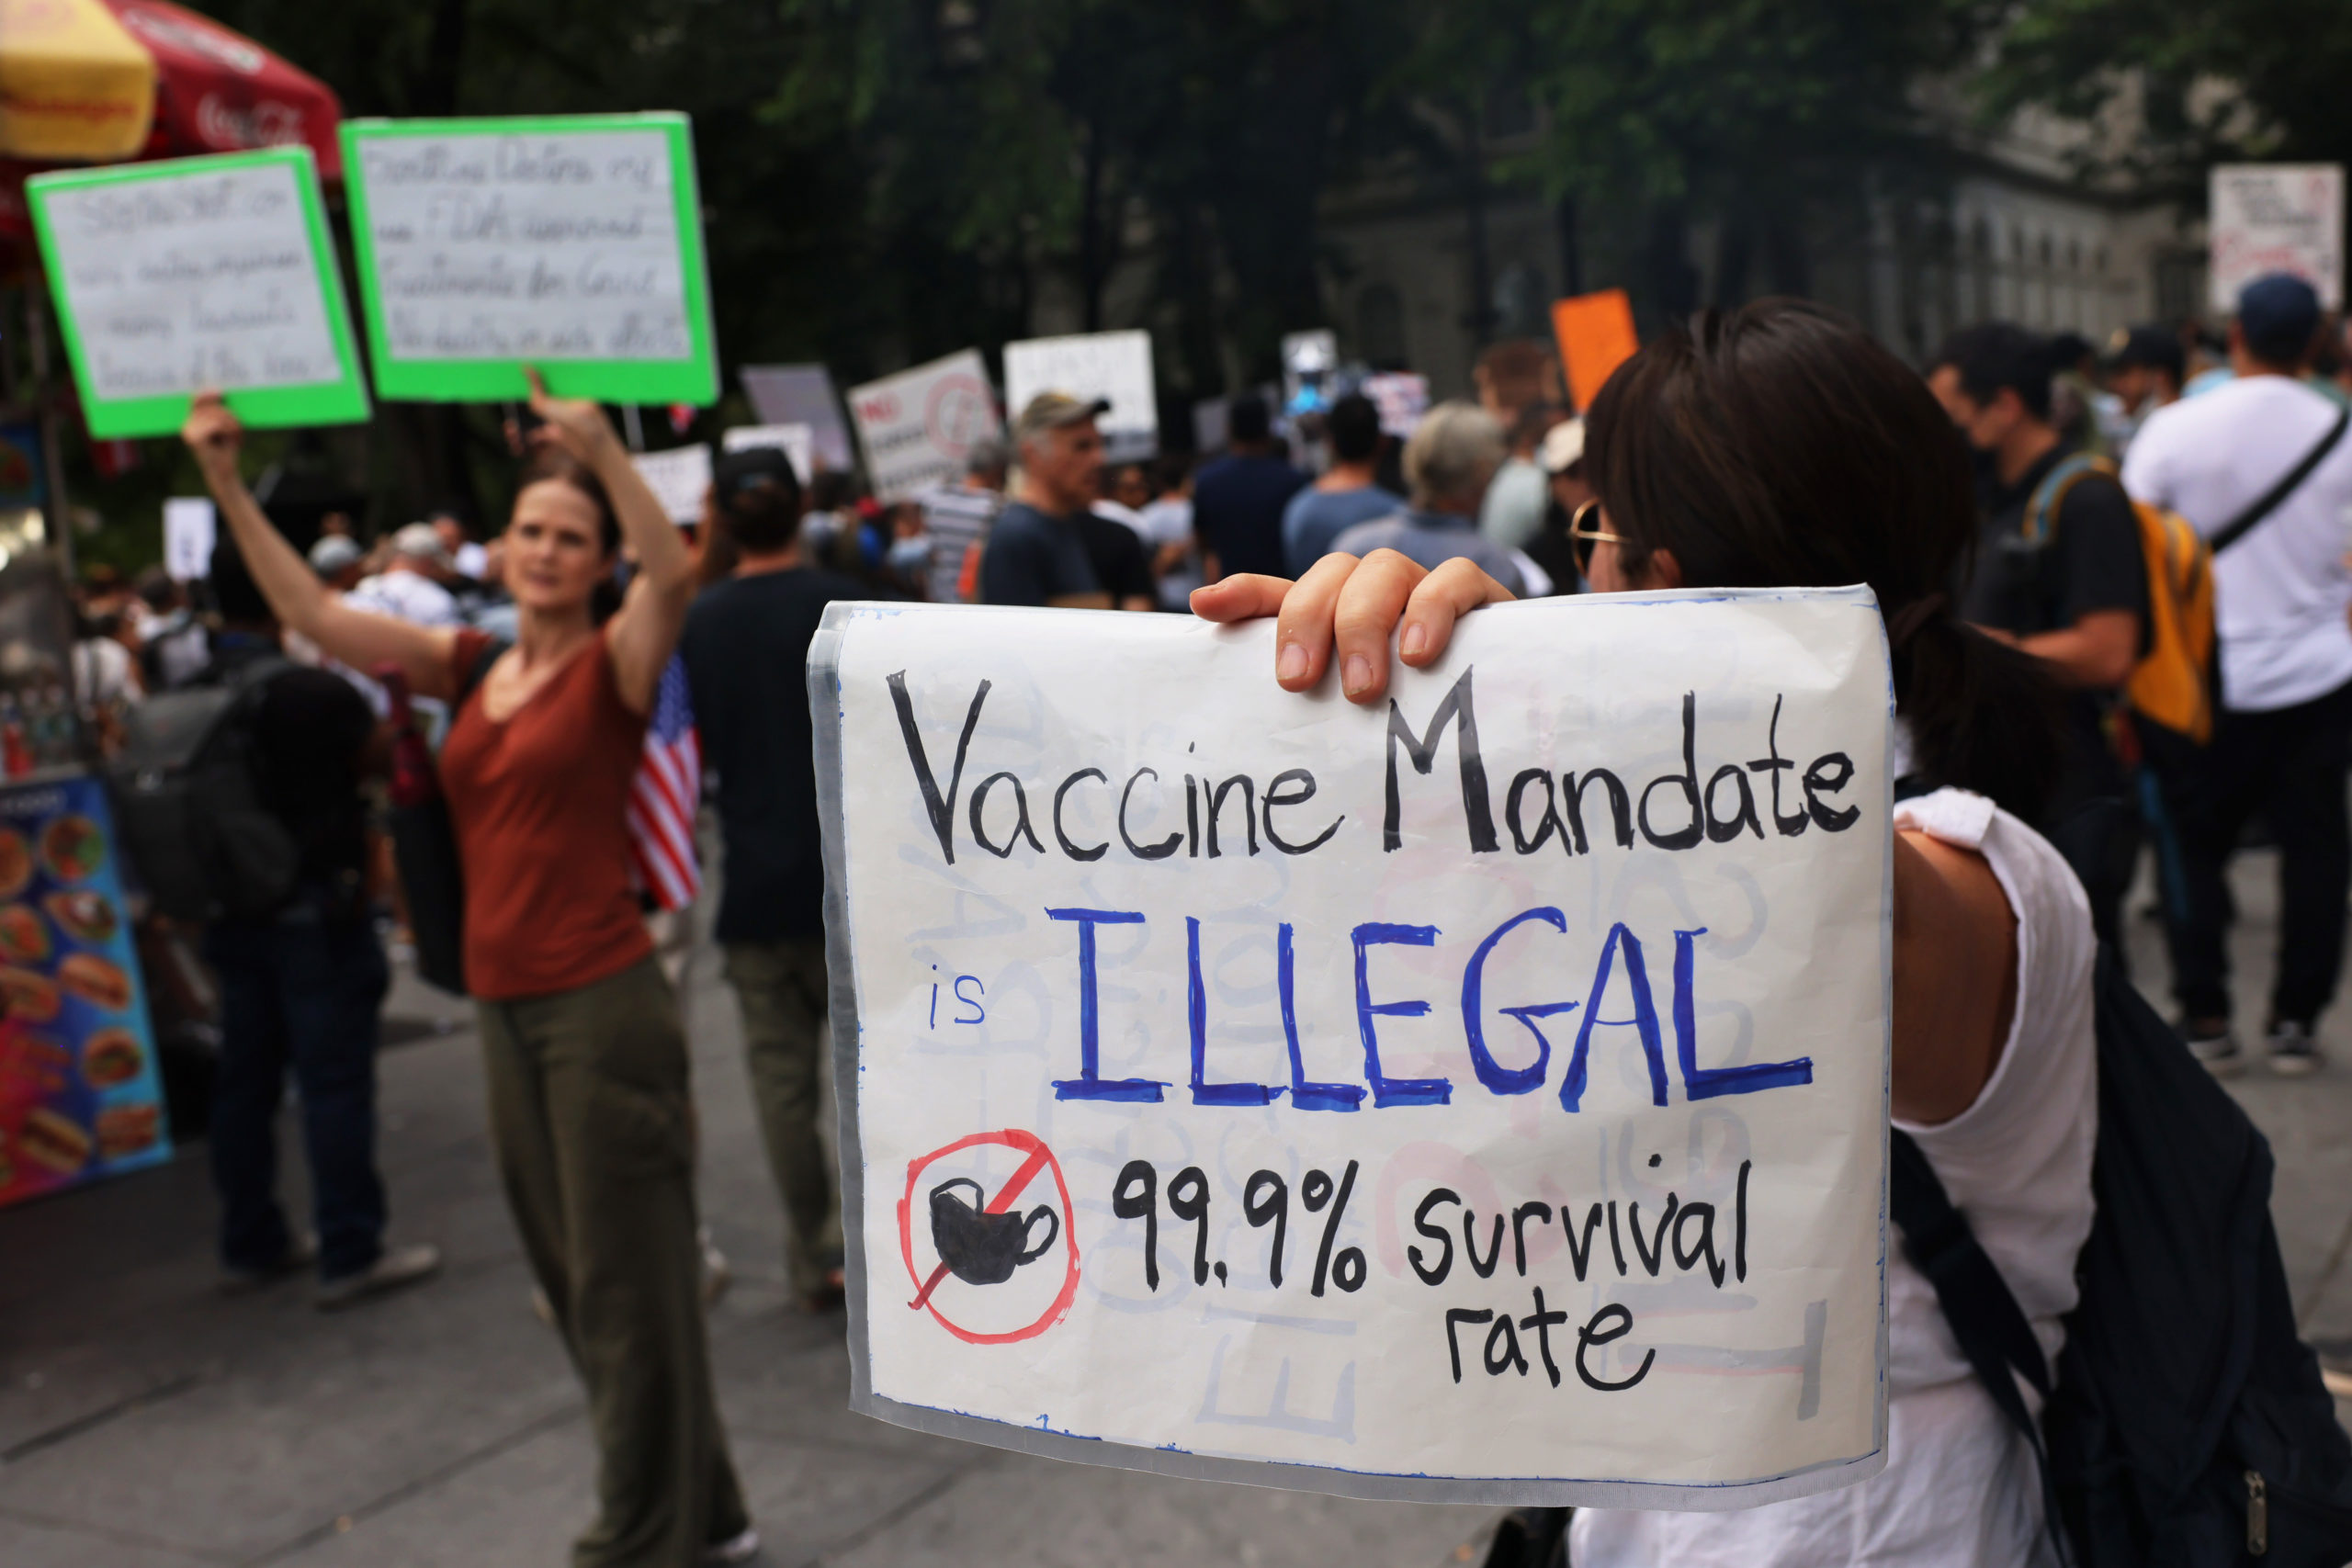 People protest vaccine mandates on in New York City on Aug. 9. (Michael M. Santiago/Getty Images)